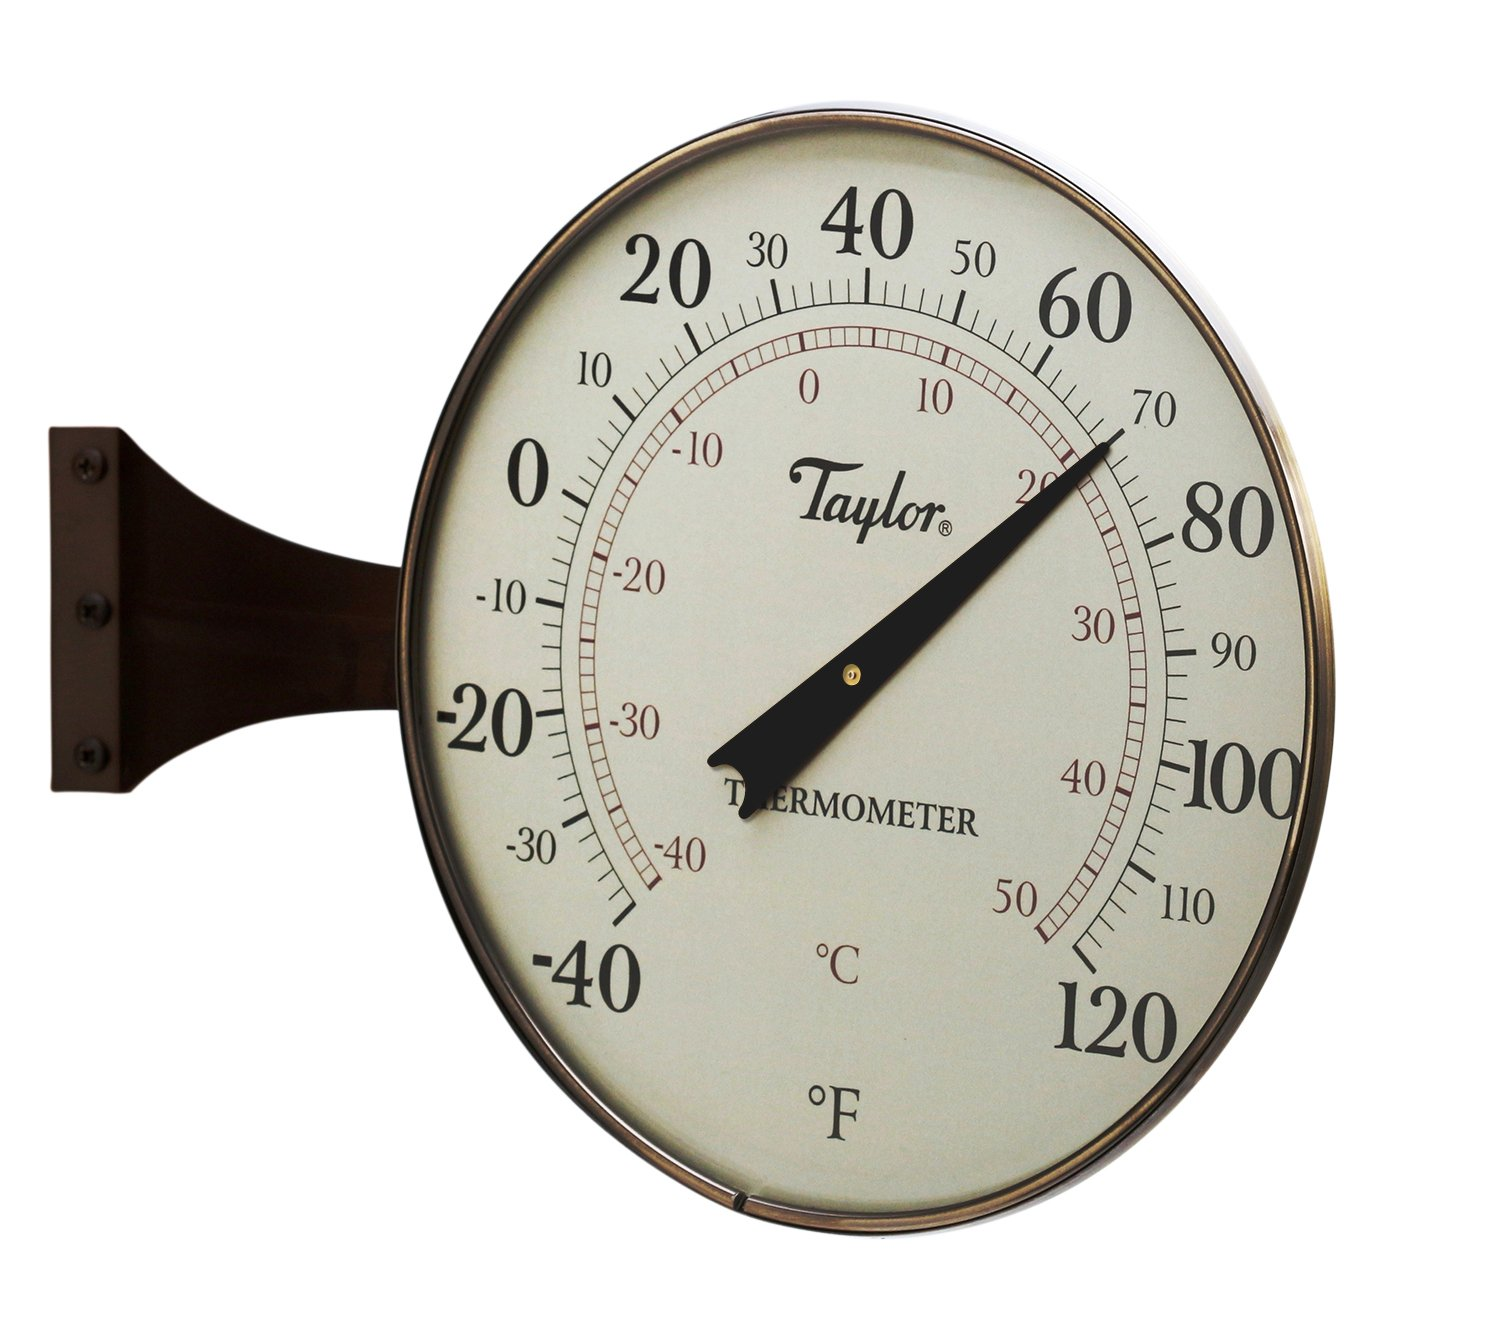 Taylor Heritage MetalDial Thermometer, 8.5-Inch